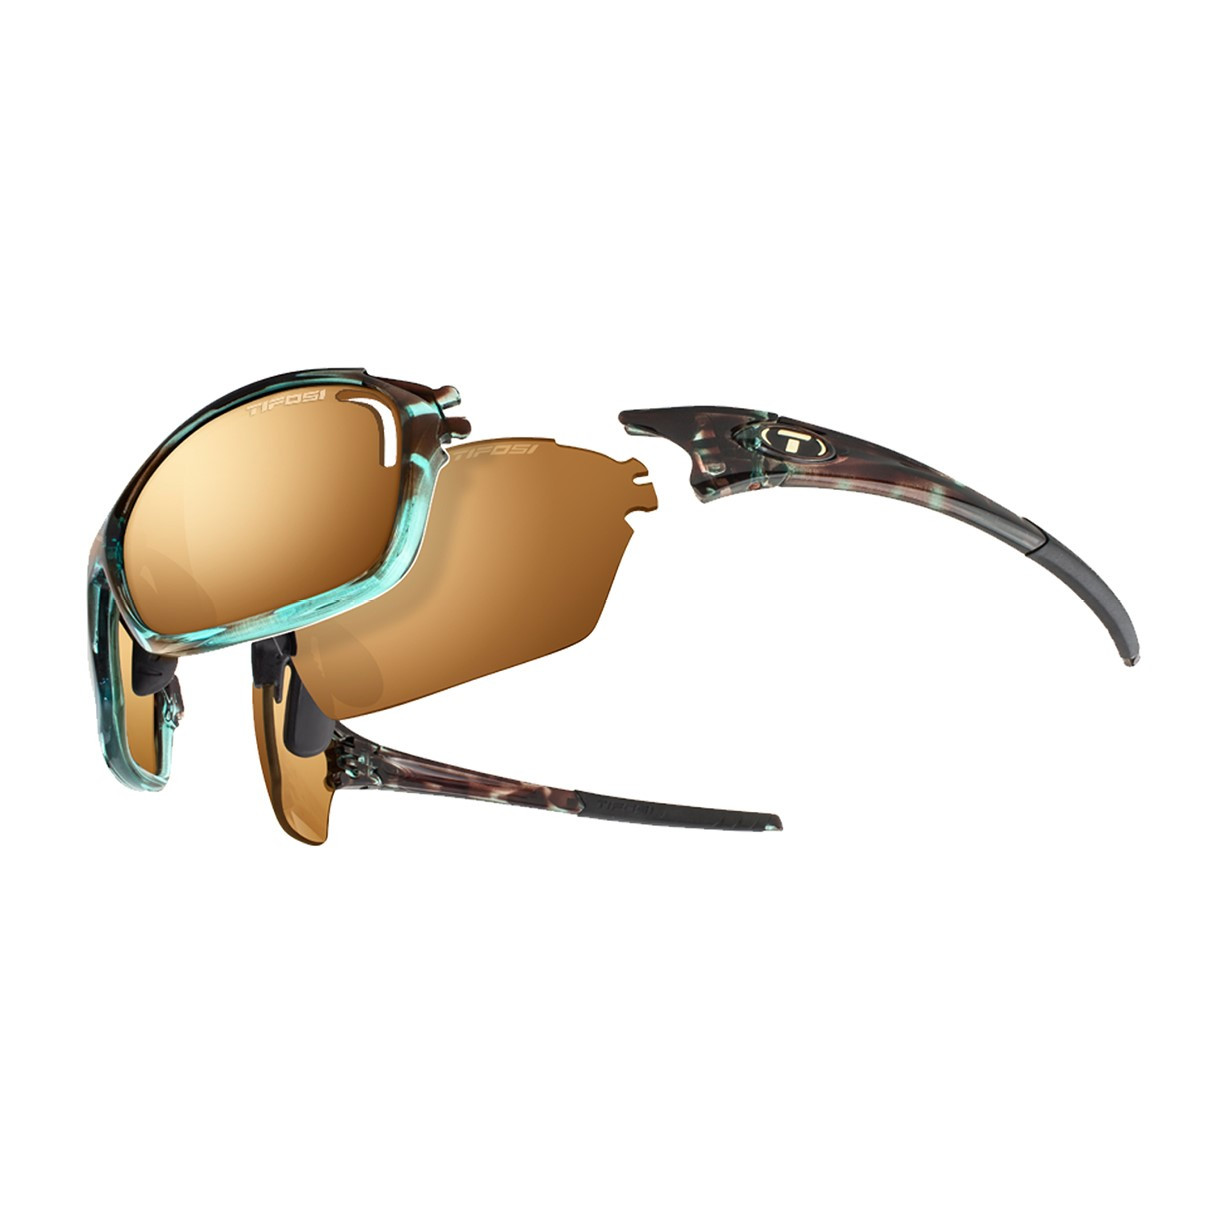 Tifosi Pro Launch S.F. Sunglasses - 2018 price